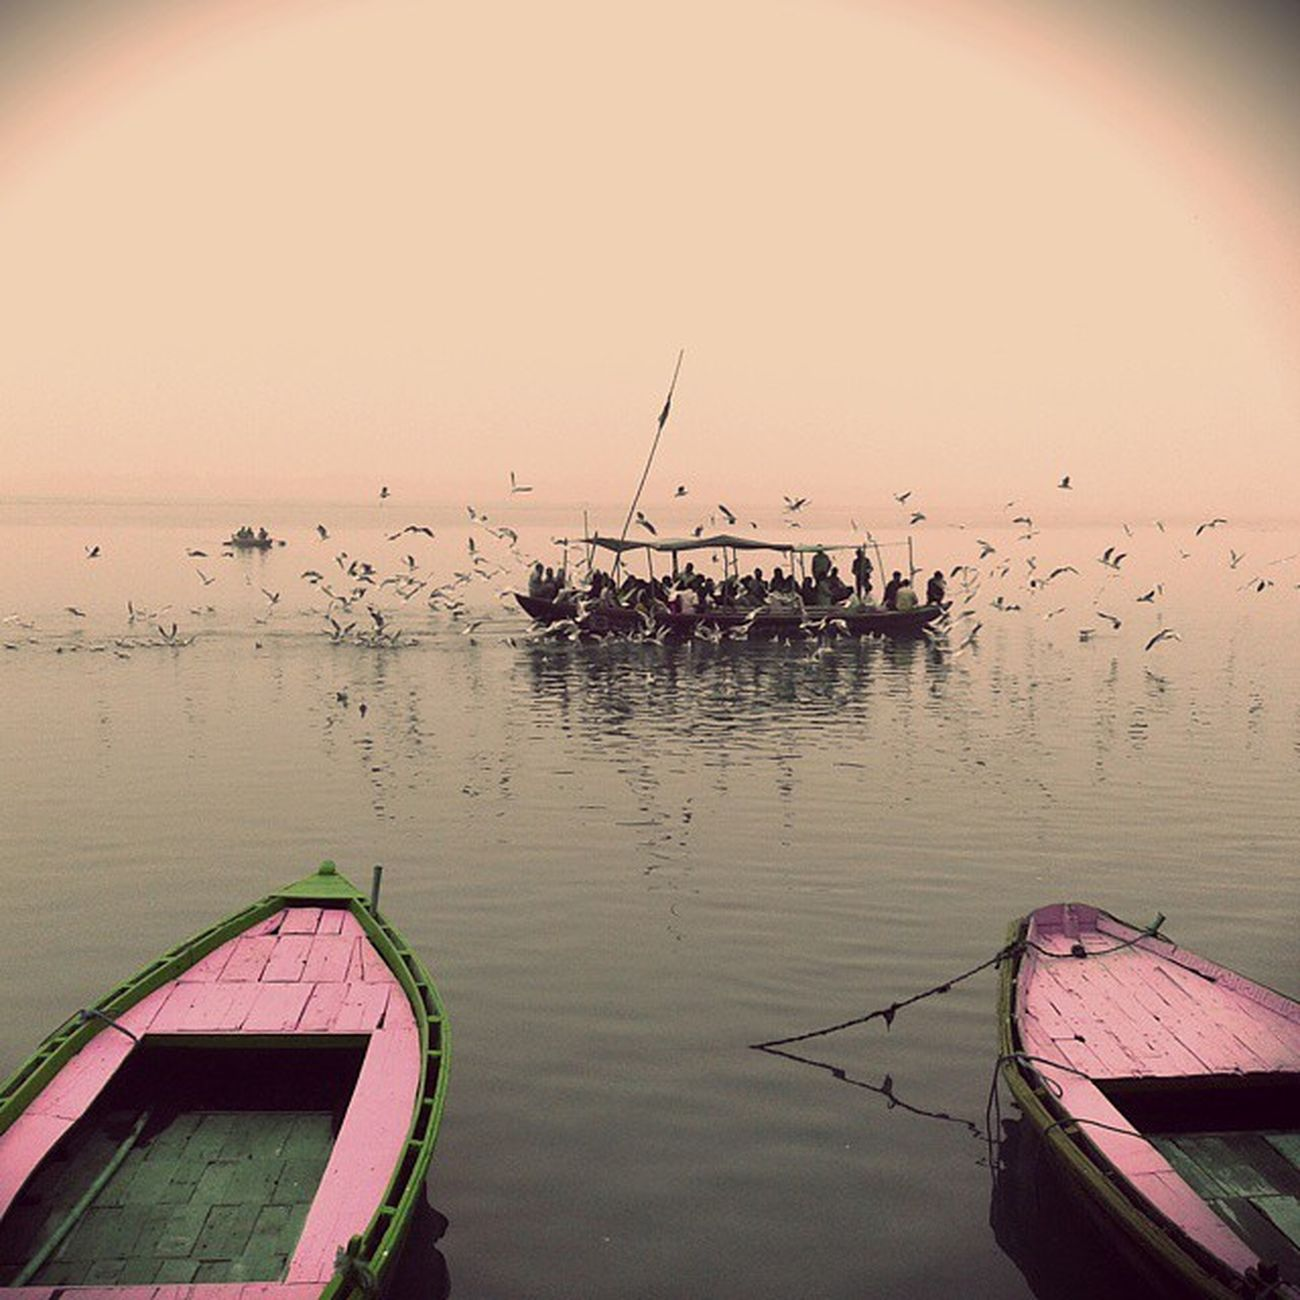 Incredible Incredible_banaras Banaras_morning Pic_of_da_day Pic by Shubham_dubey ... a click by me...